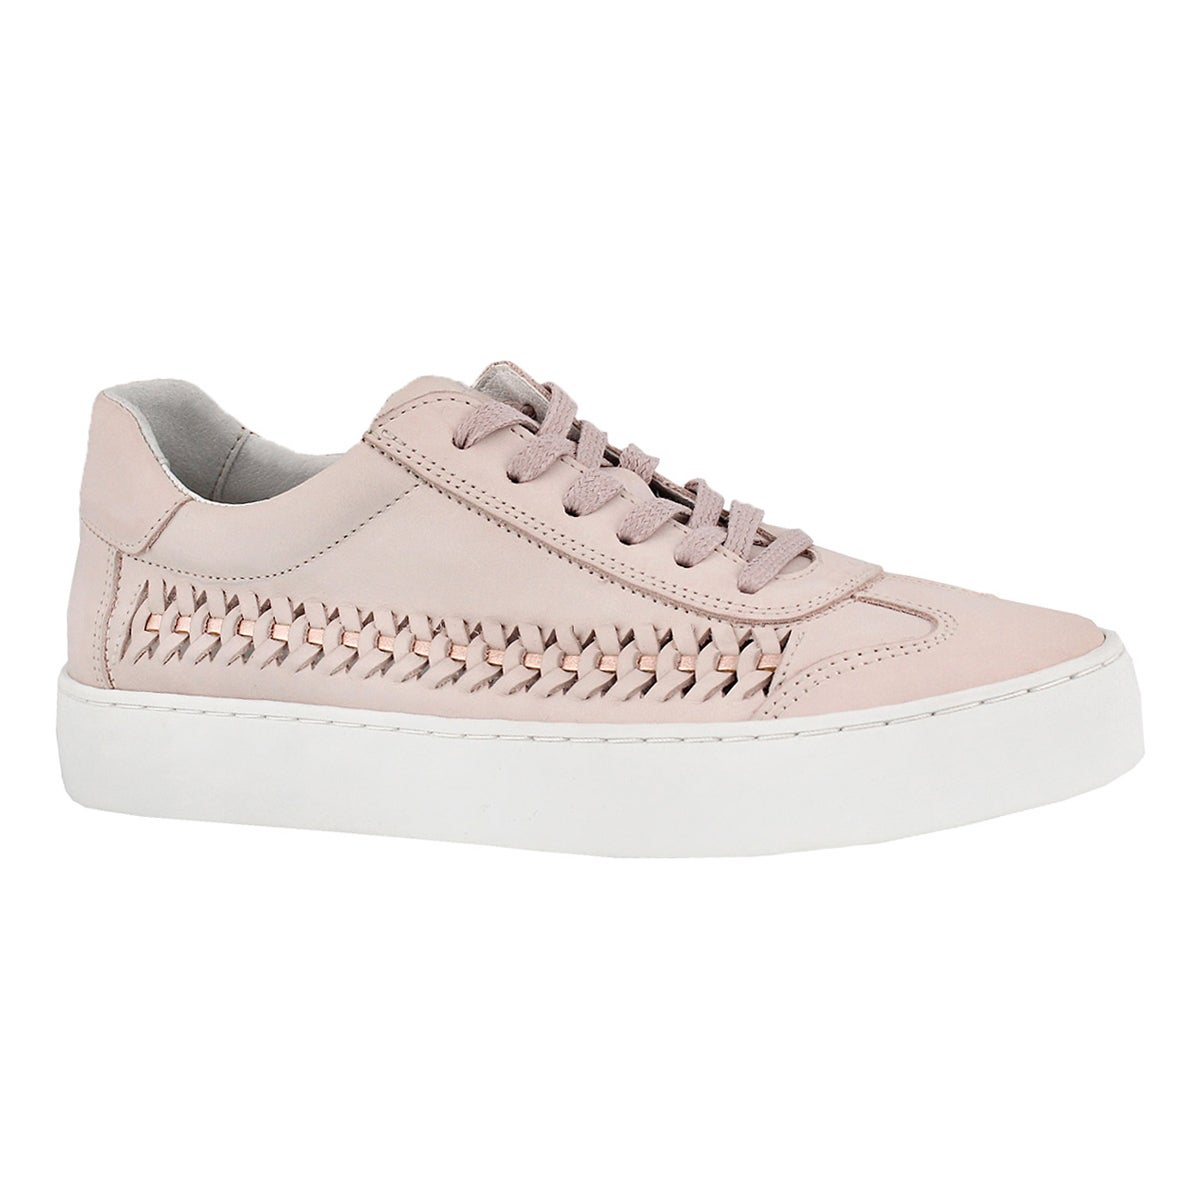 Women's BIANA pink casual lace up sneakers